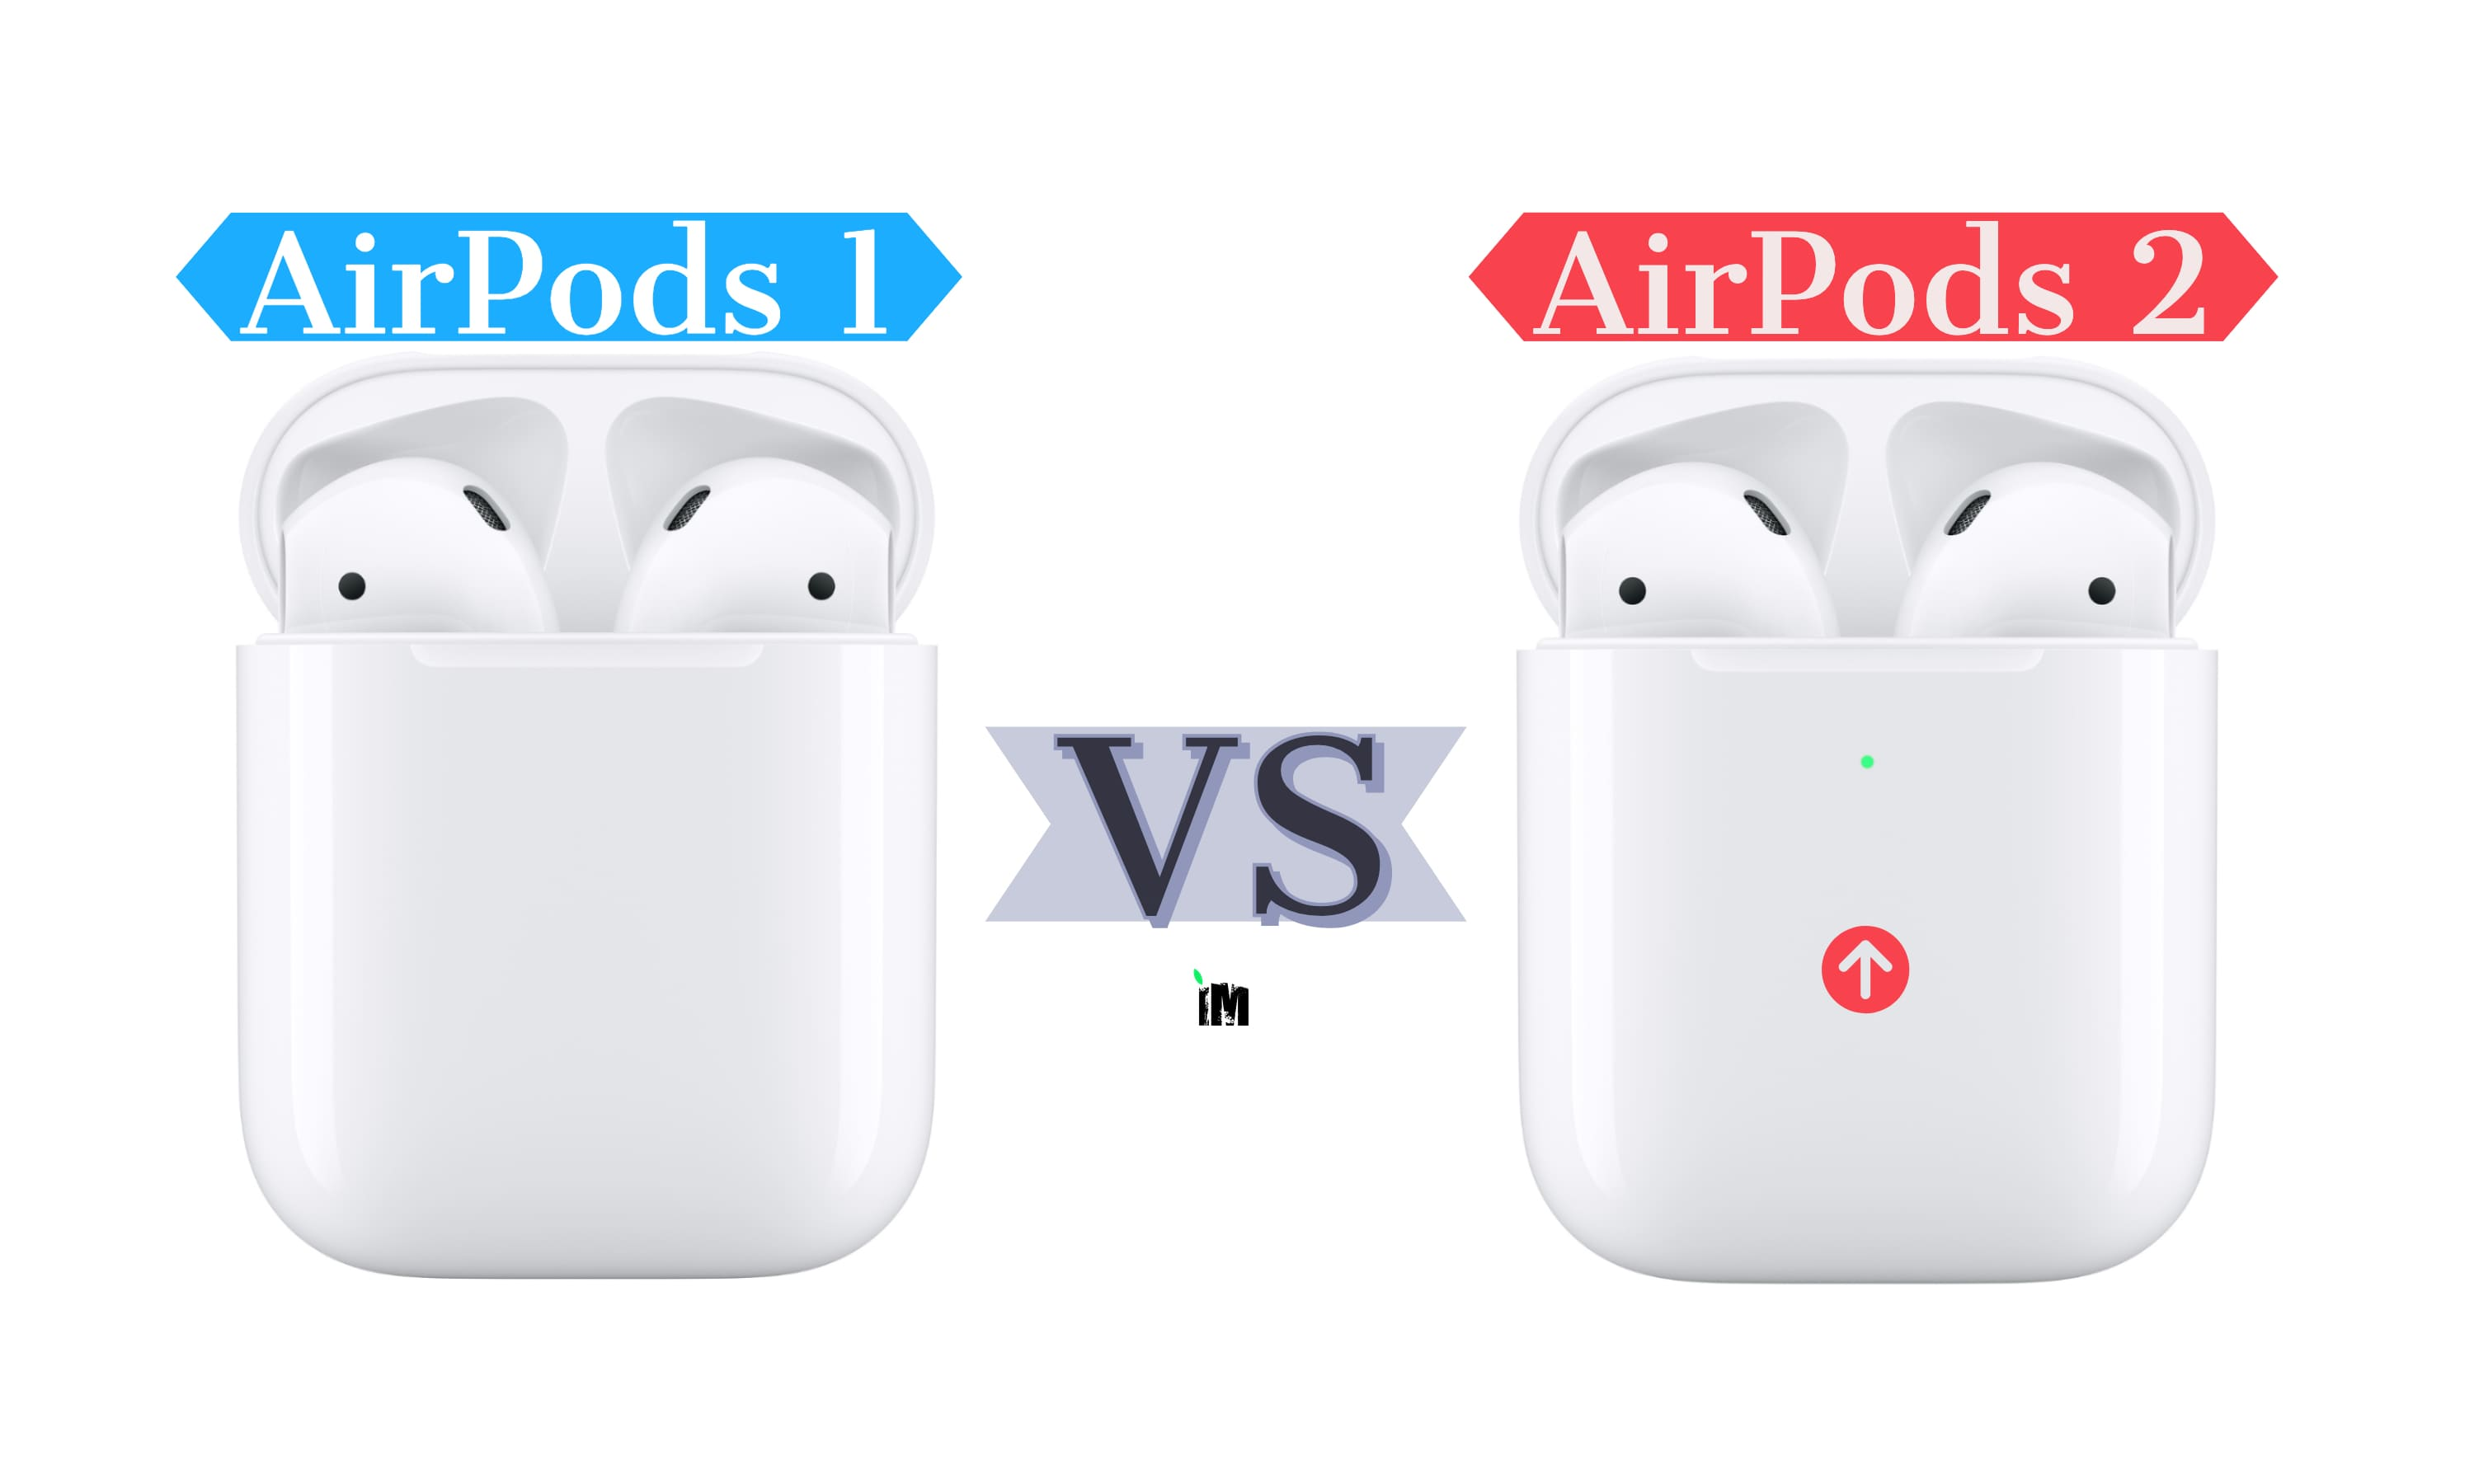 AirPods 1_vs_AirPods 2